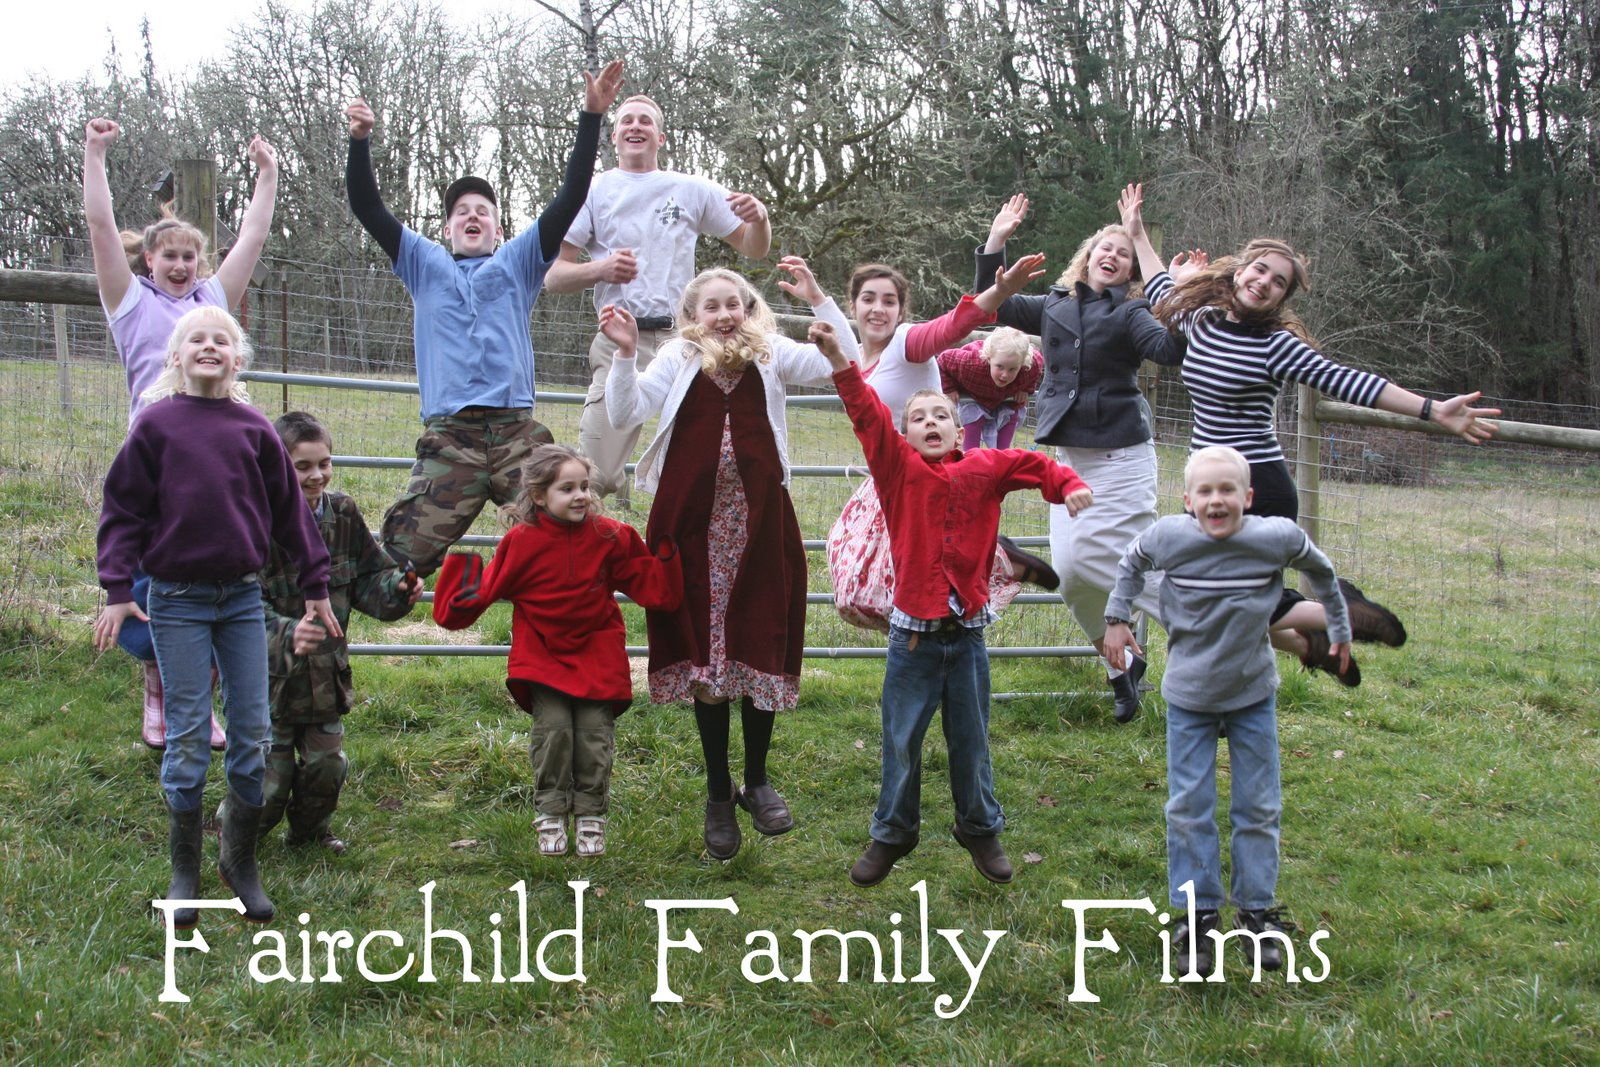 Fairchild Family Films